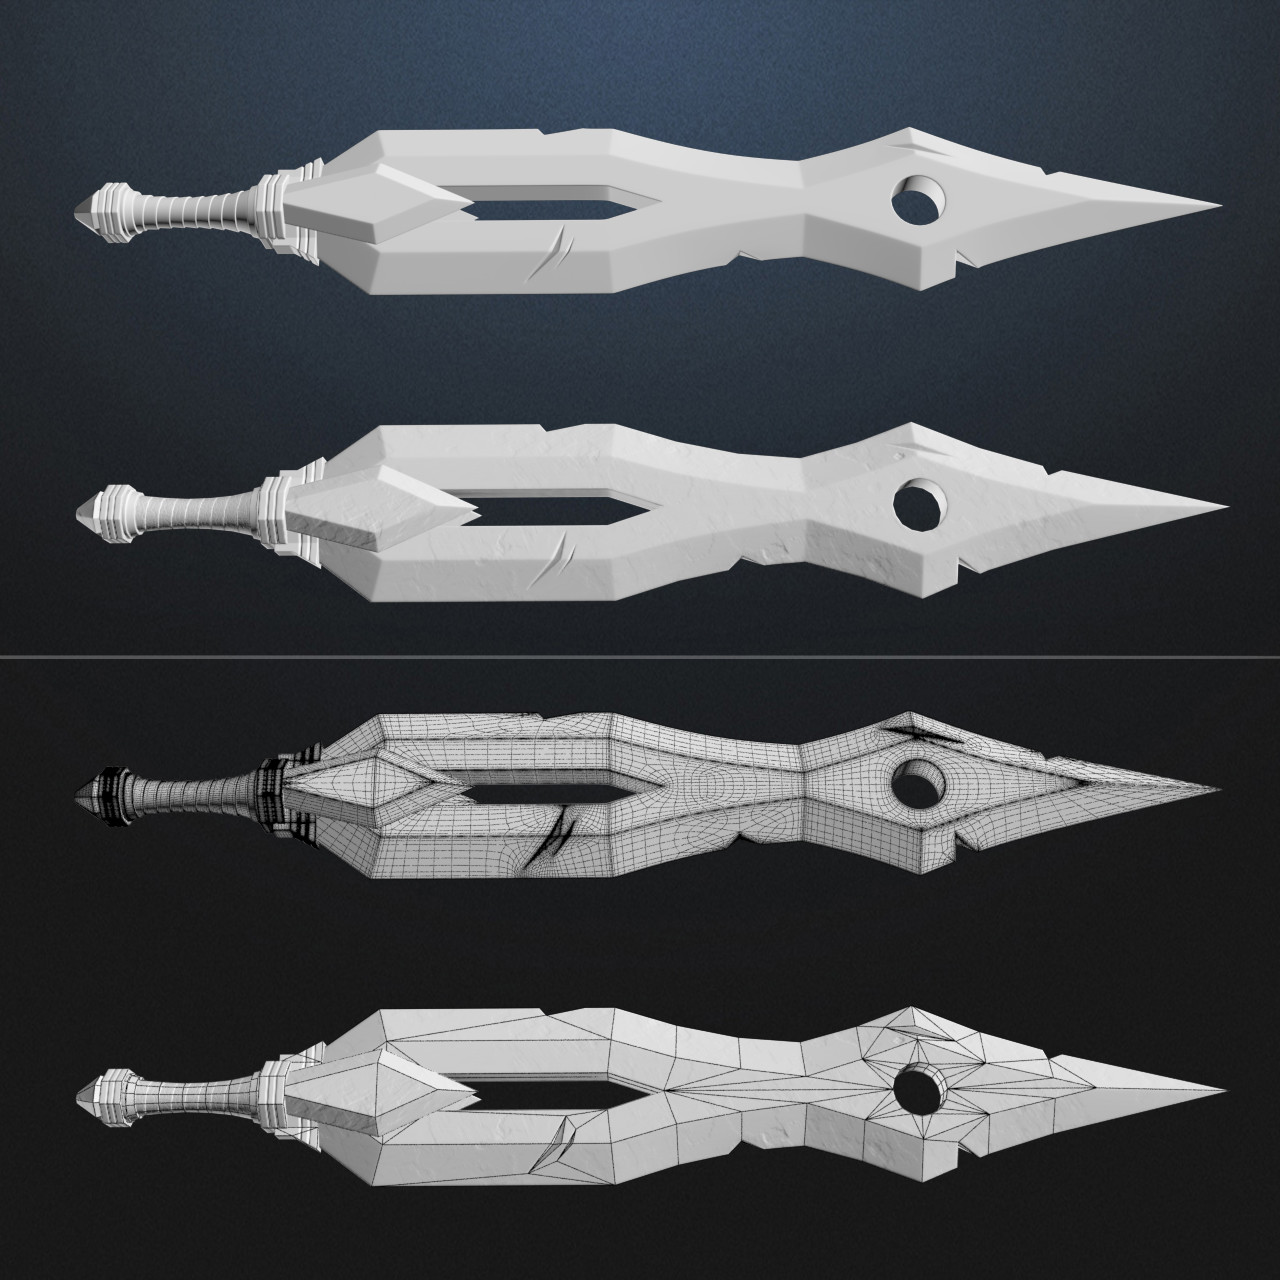 High poly to low poly comparisons